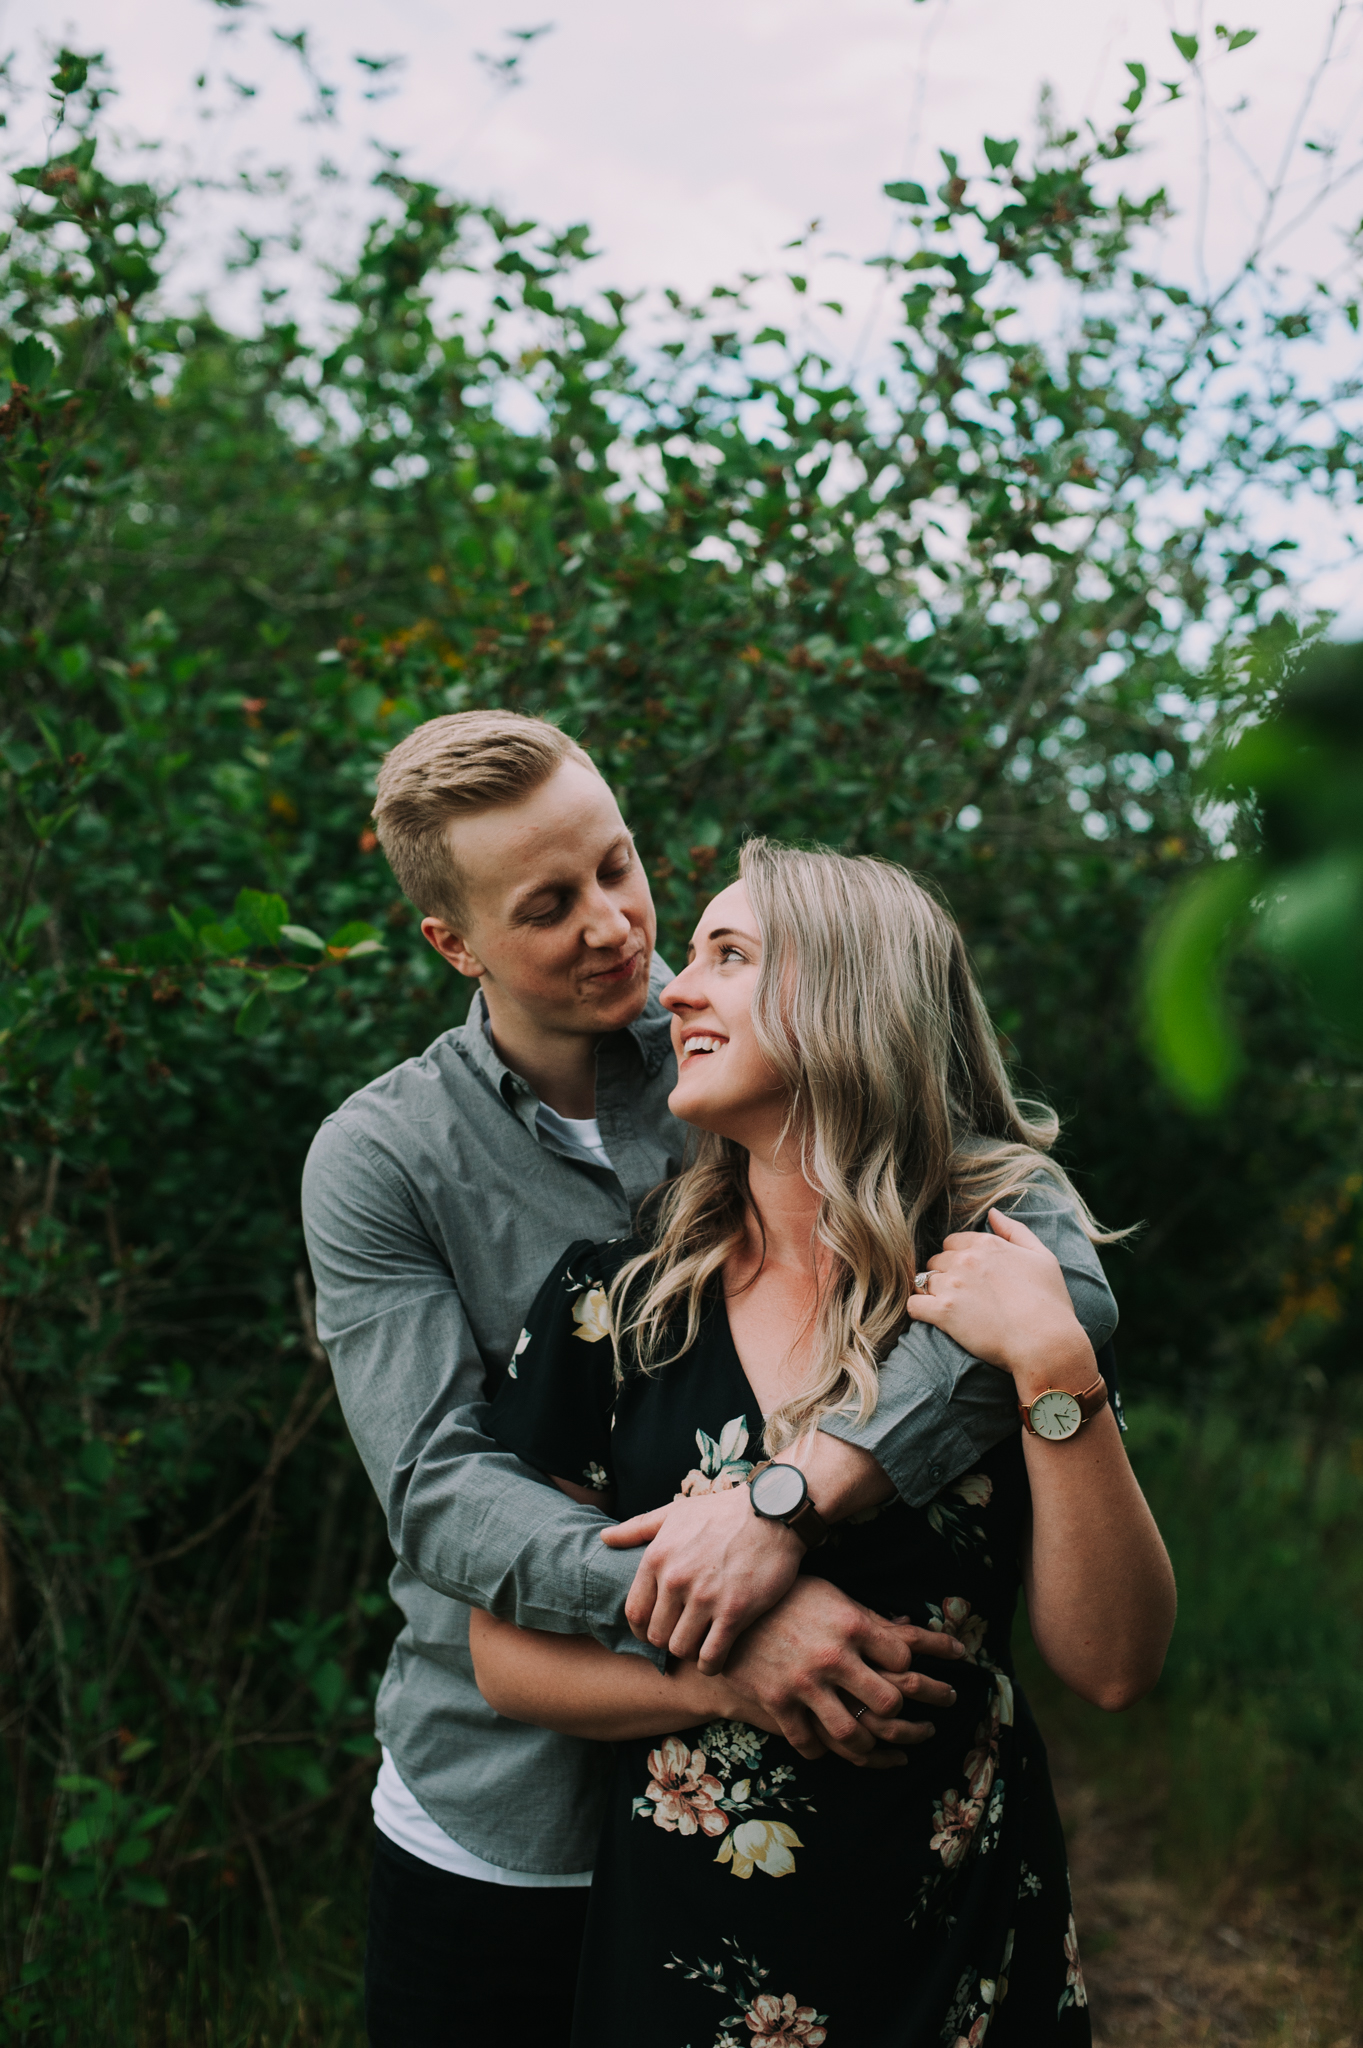 Leah+Rylan May2019_7.jpg